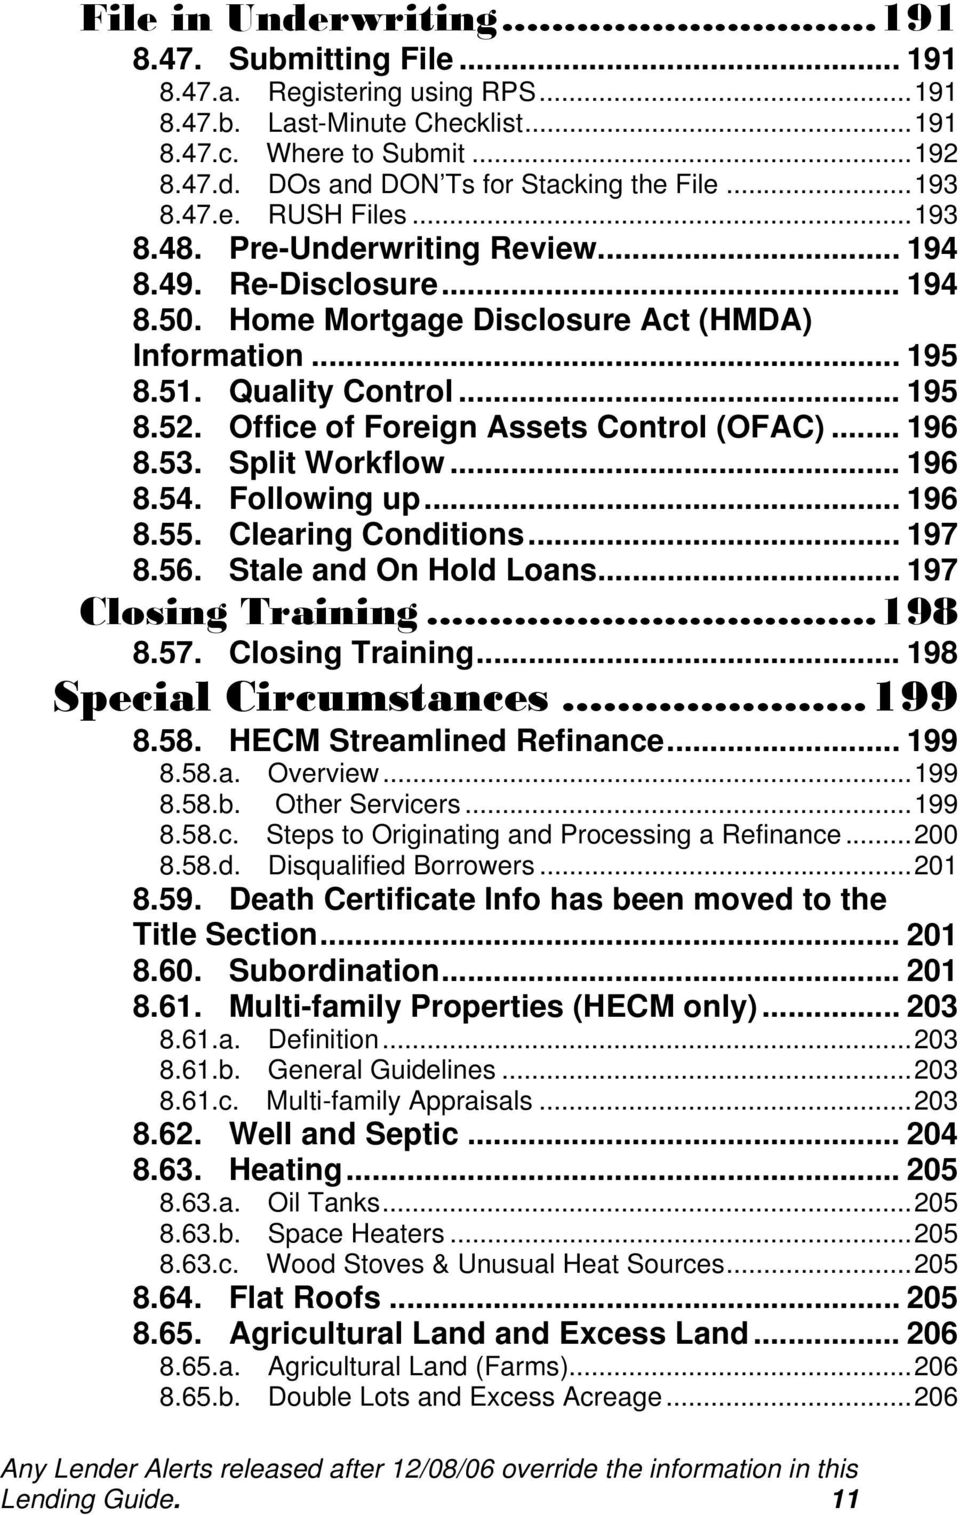 Office of Foreign Assets Control (OFAC)... 196 8.53. Split Workflow... 196 8.54. Following up... 196 8.55. Clearing Conditions... 197 8.56. Stale and On Hold Loans... 197 Closing Training...198 8.57.